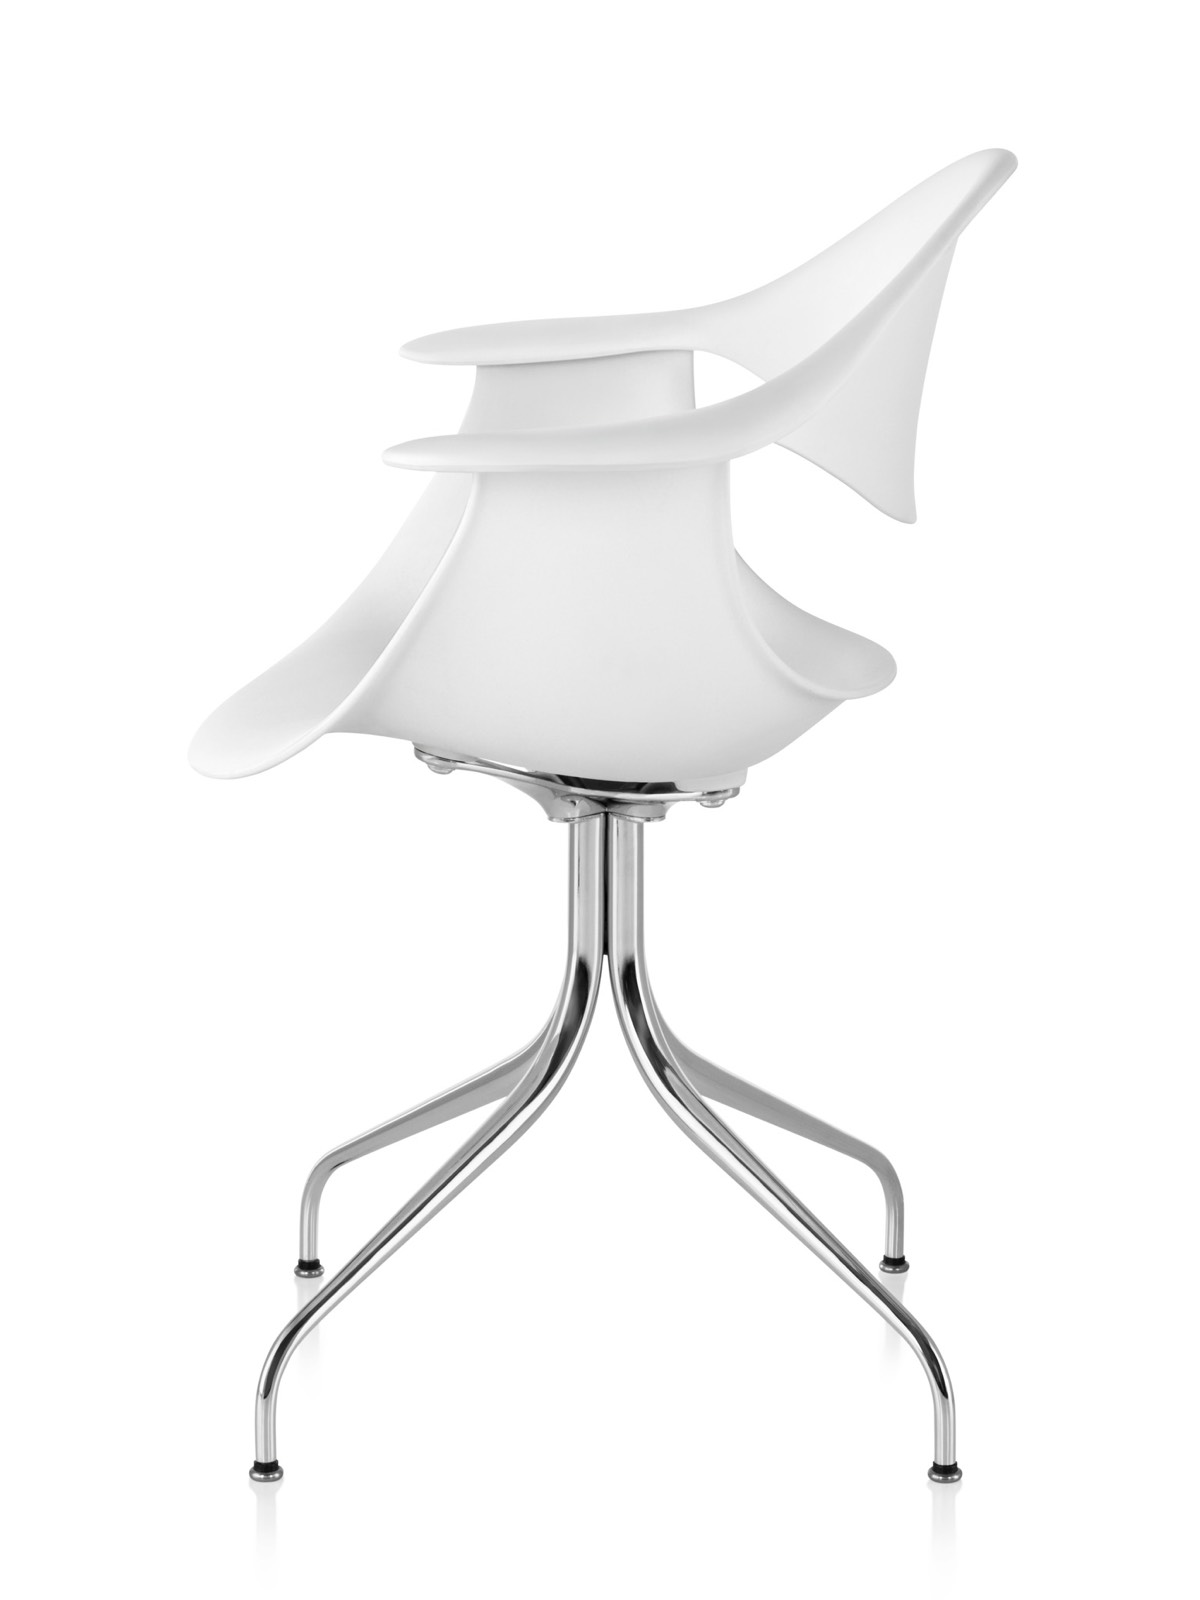 Profile view of a white Nelson Swag Leg Armchair, showing the molded plastic shell and curved steel legs.